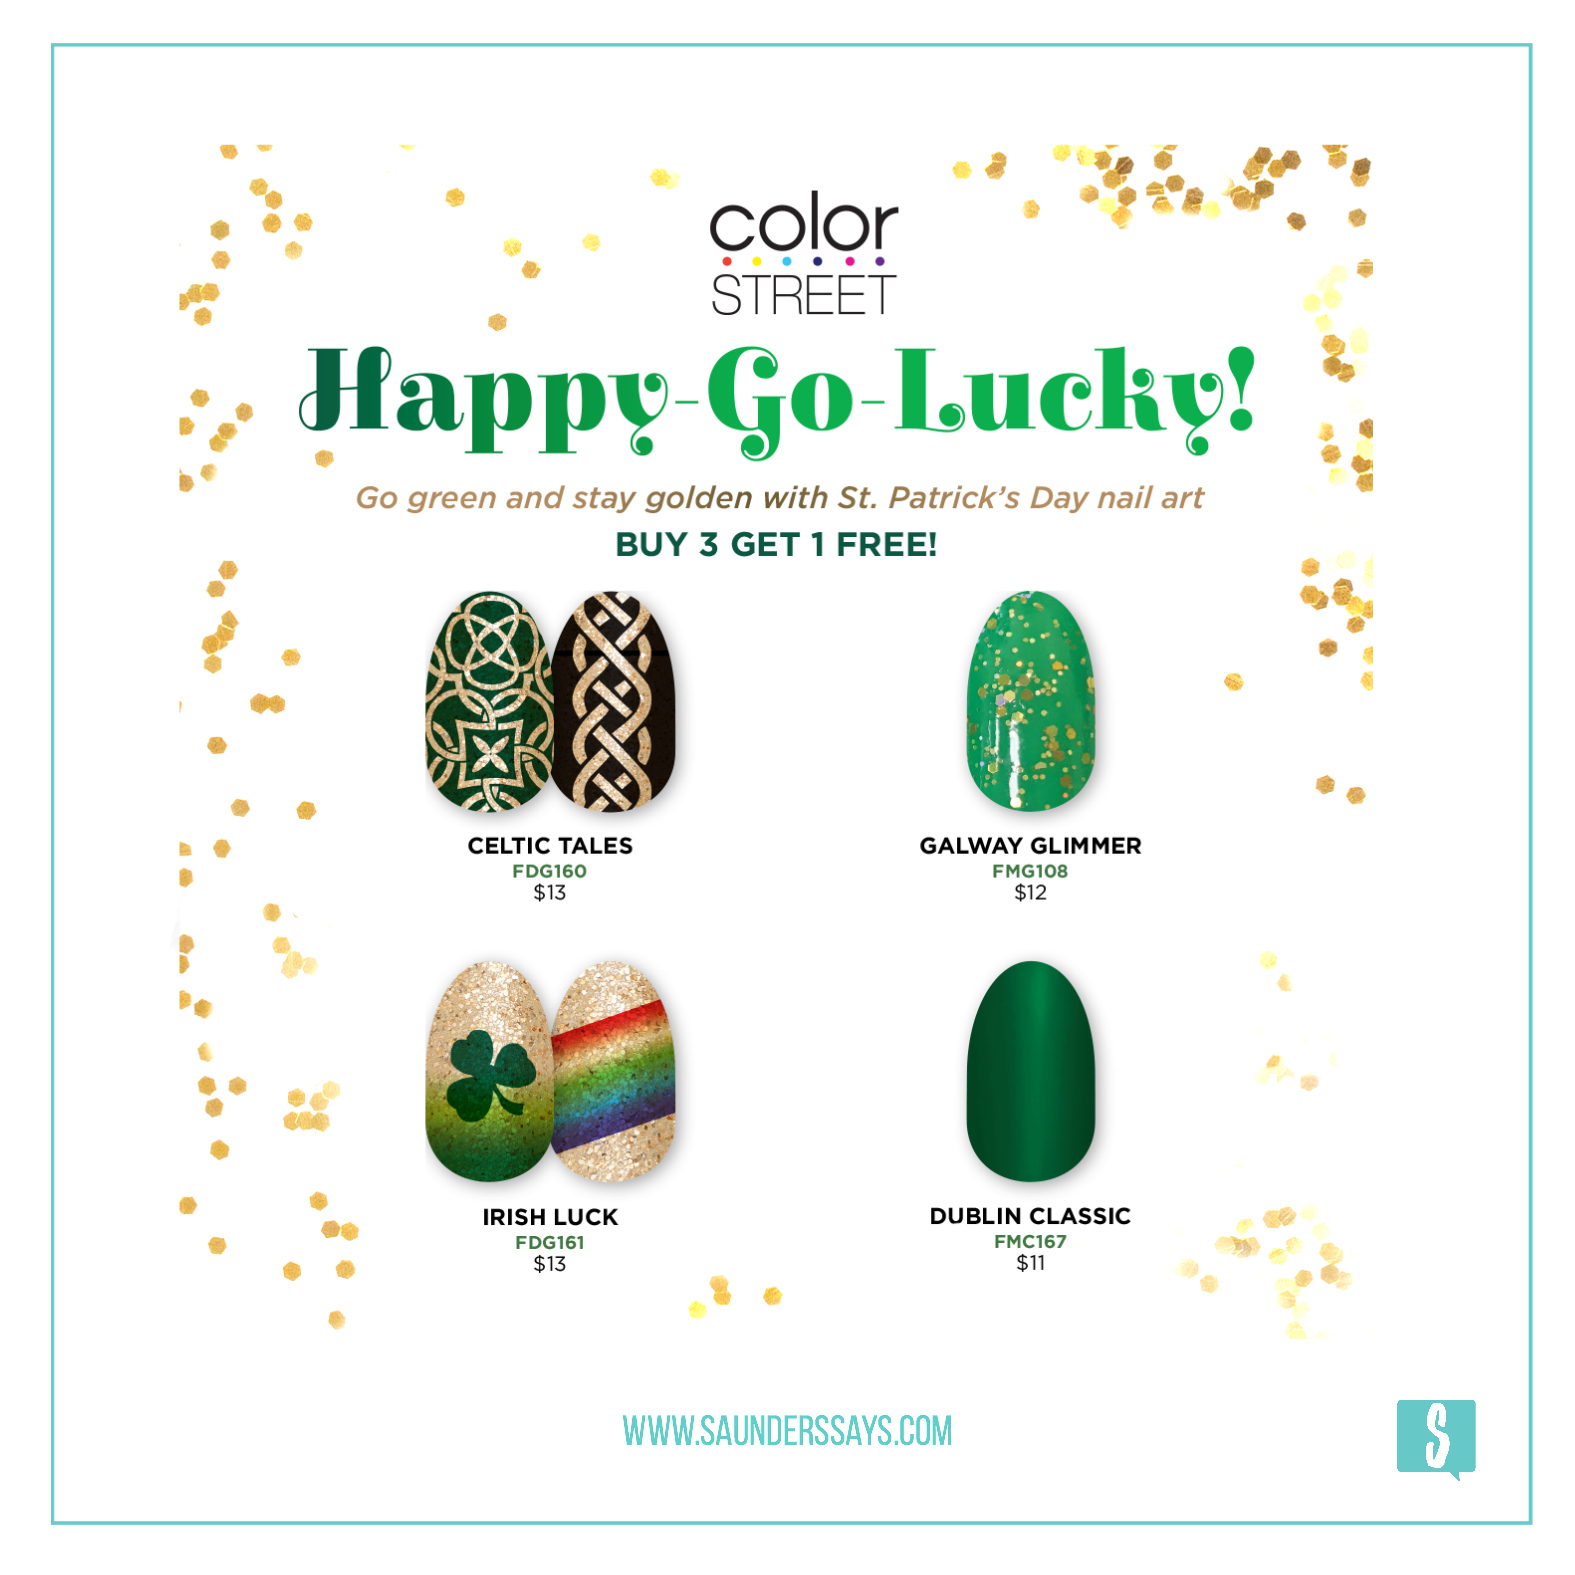 Color Street's Happy-Go-Lucky Collection for St. Patrick's Day! www.saunderssays.com #becolorstreet #greennails #happygolucky #stpatricksdaynails